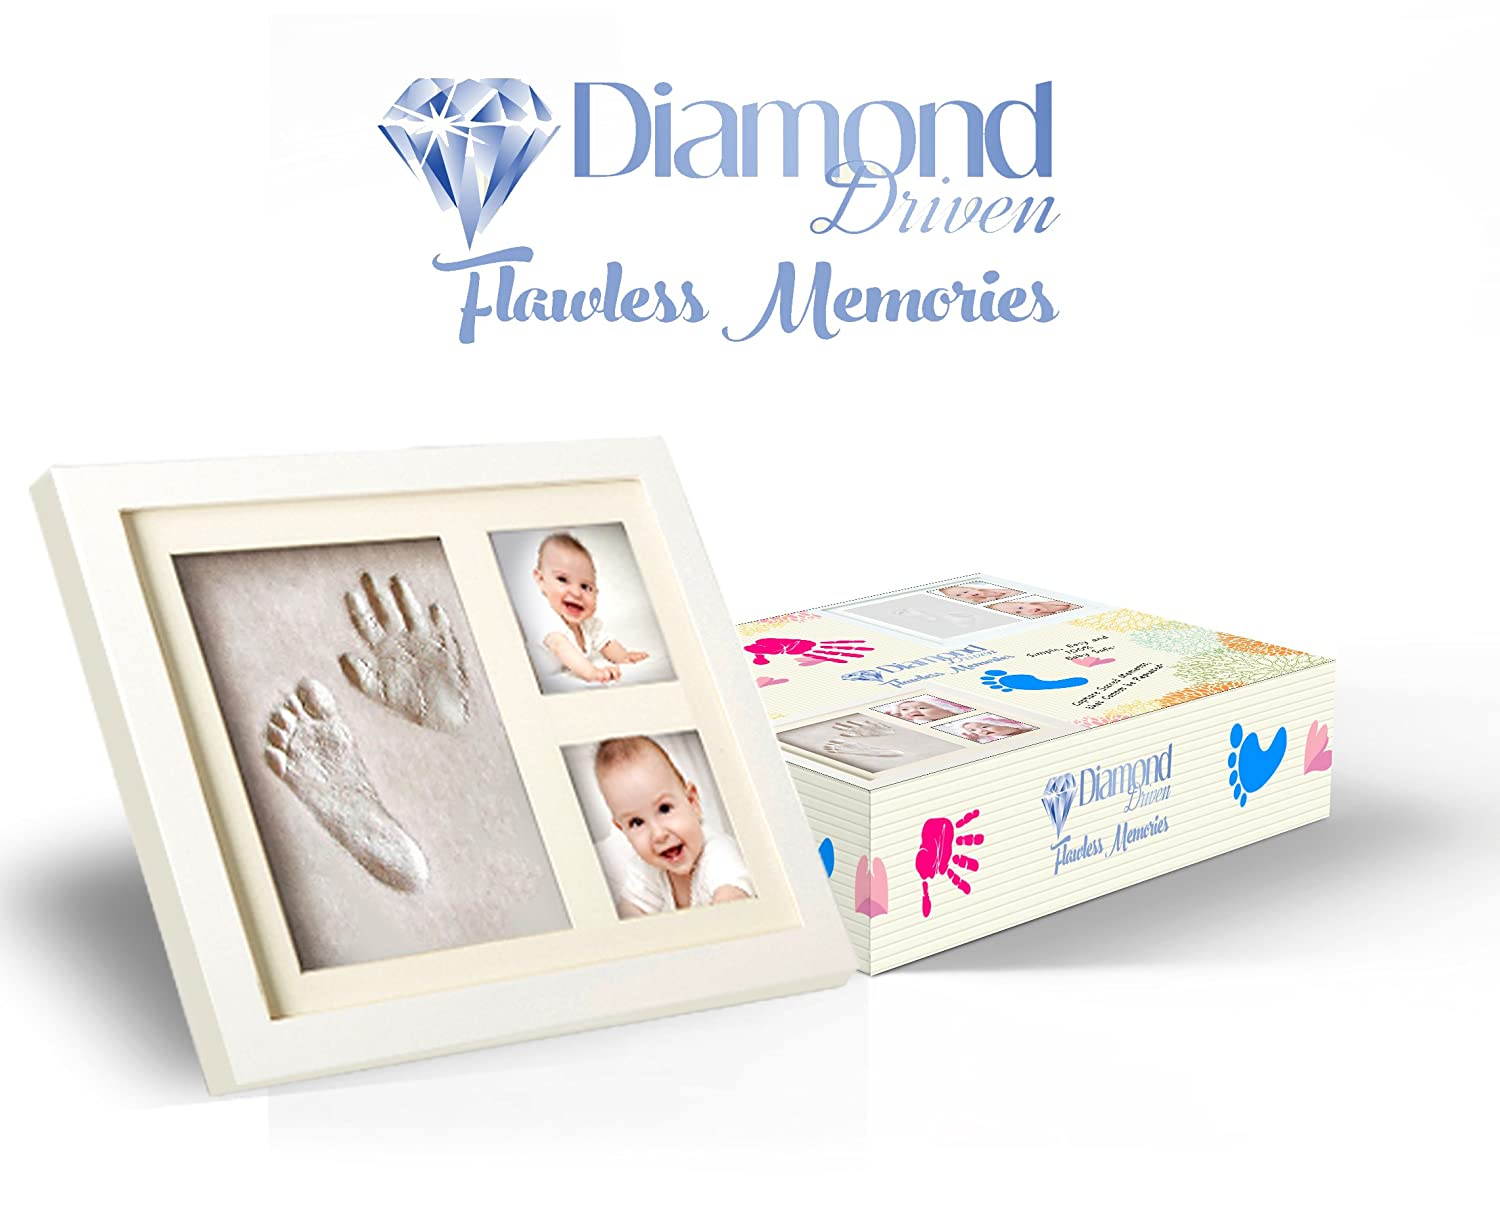 Non-Toxic Clay Mold Two Picture Frame Keepsake Frame Acrylic Cover with Premium Quality Wood Clay by Diamond Driven DD-BabyFrameHandFoot Baby Footprint Kit Baby Shower Photo Frame